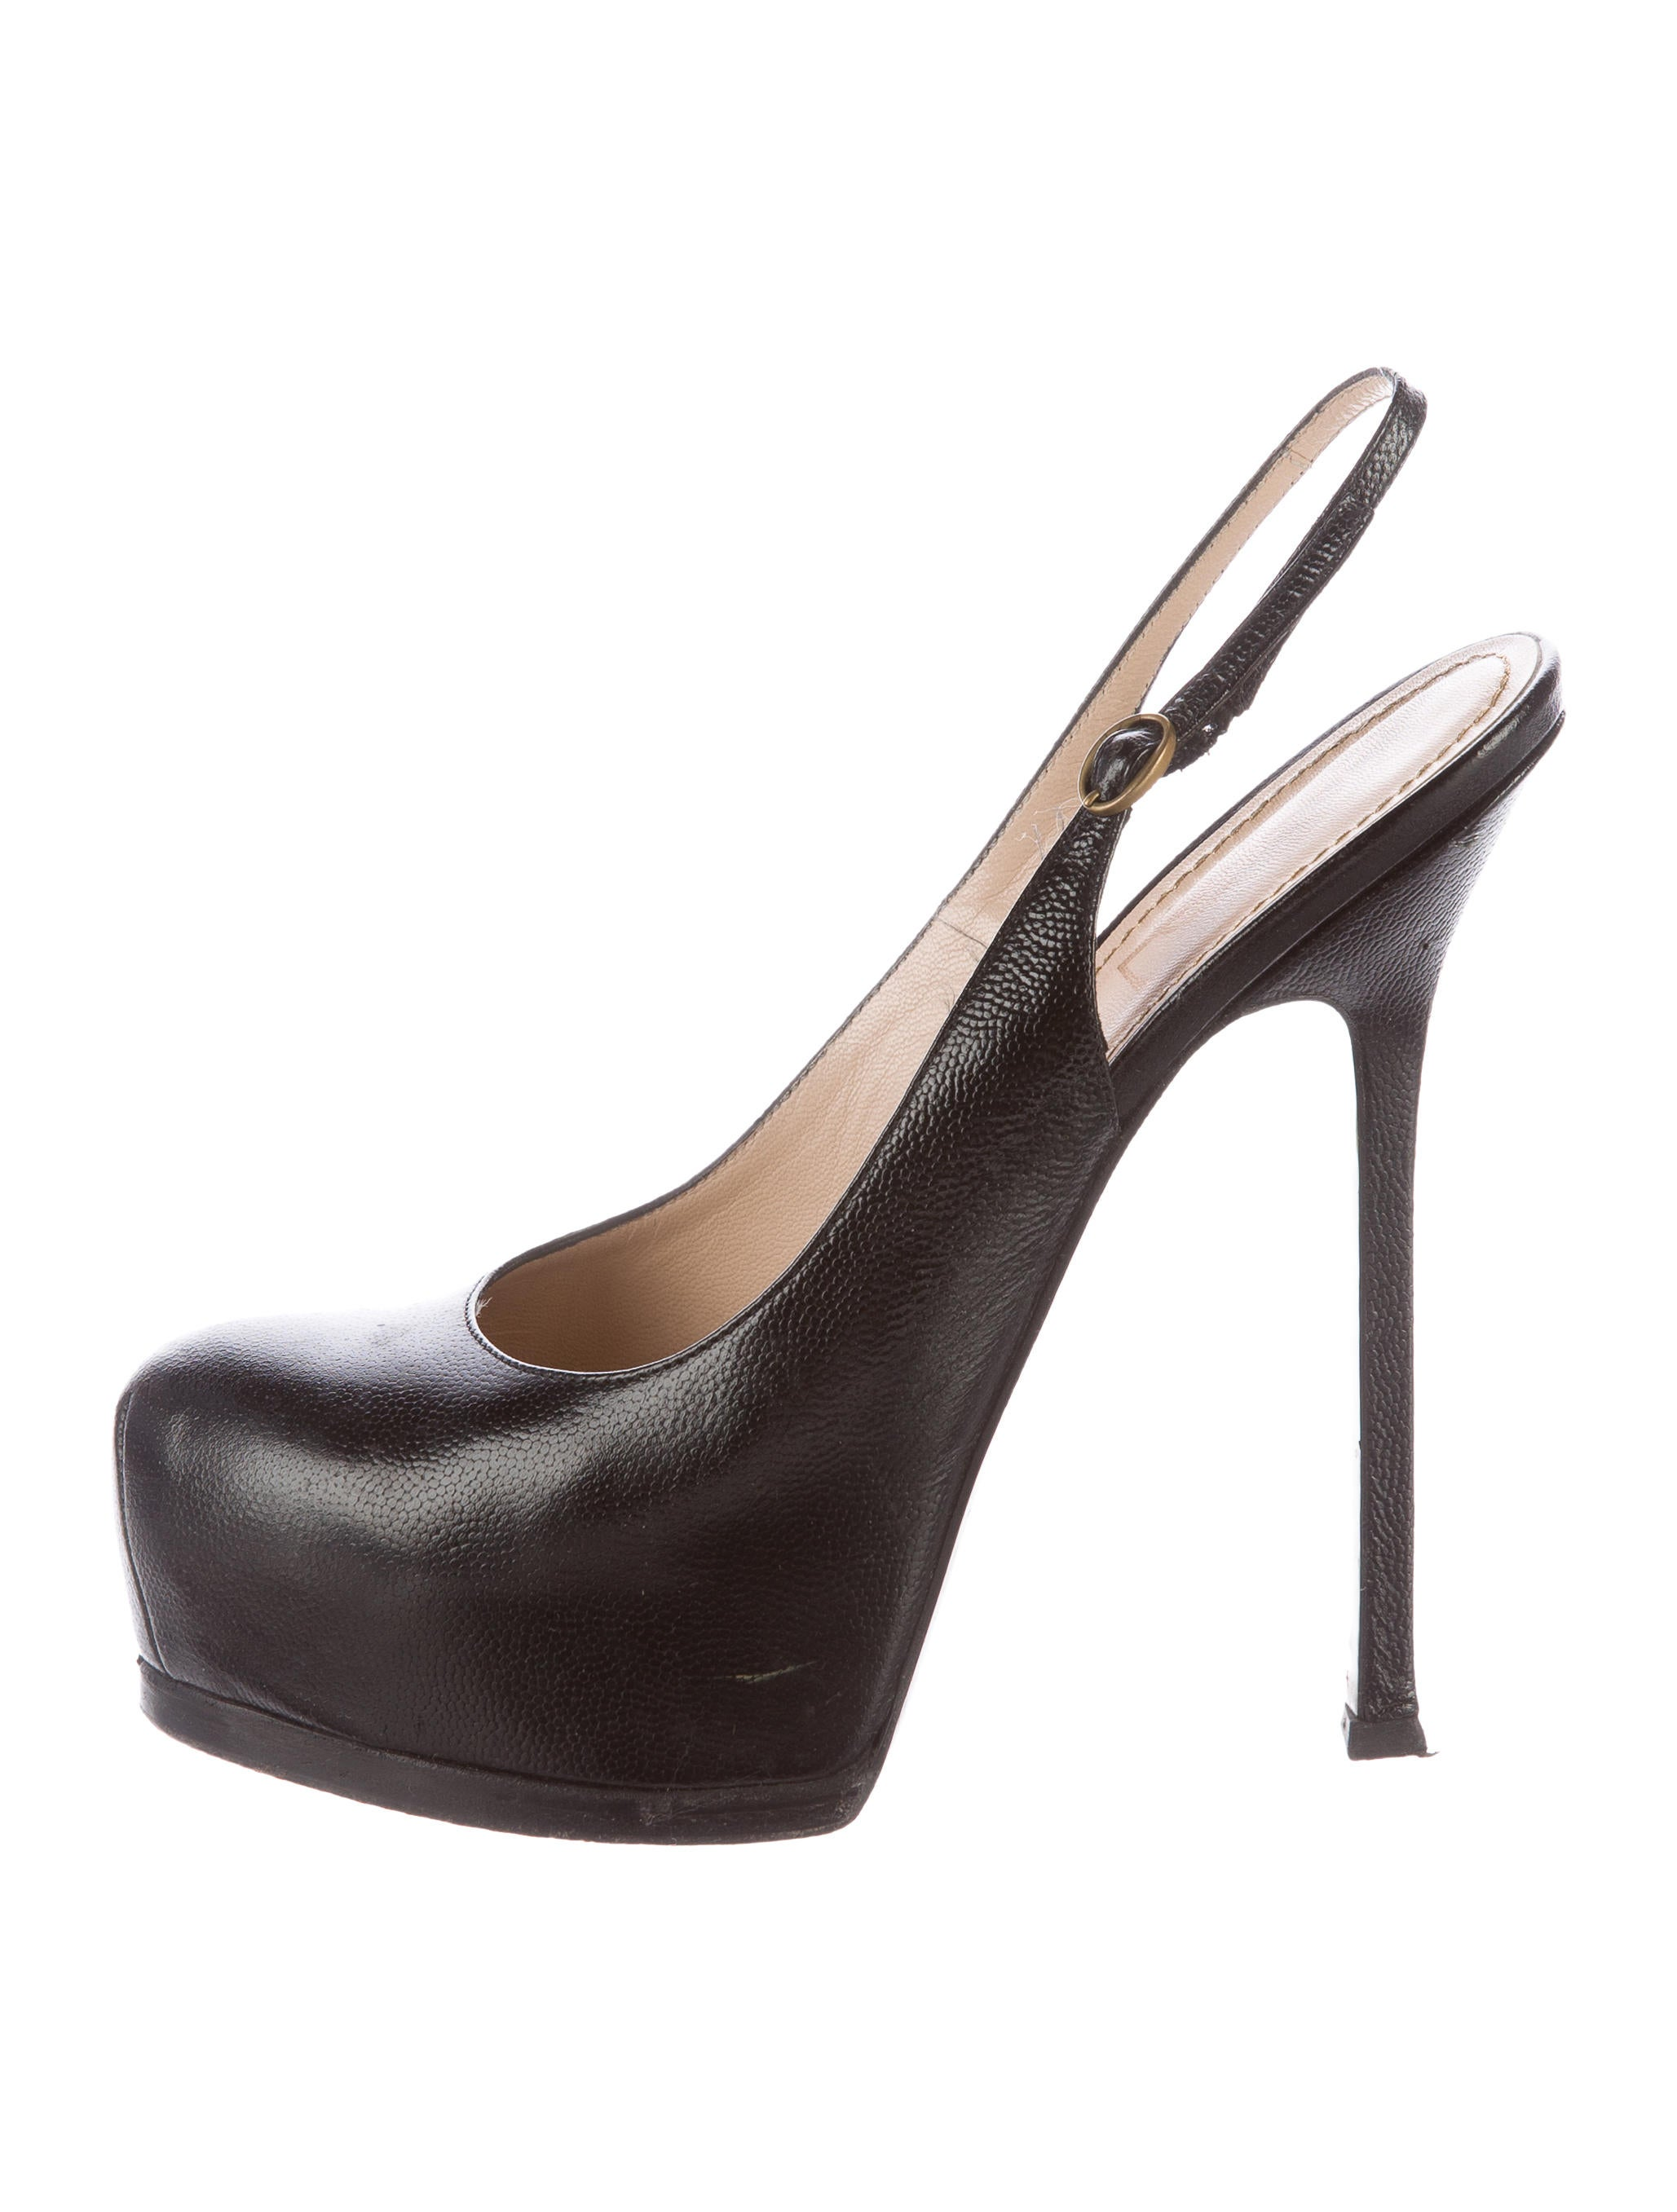 Yves Saint Laurent Leather Slingback Pumps Shoes  : YVE567611enlarged from www.therealreal.com size 2057 x 2714 jpeg 260kB